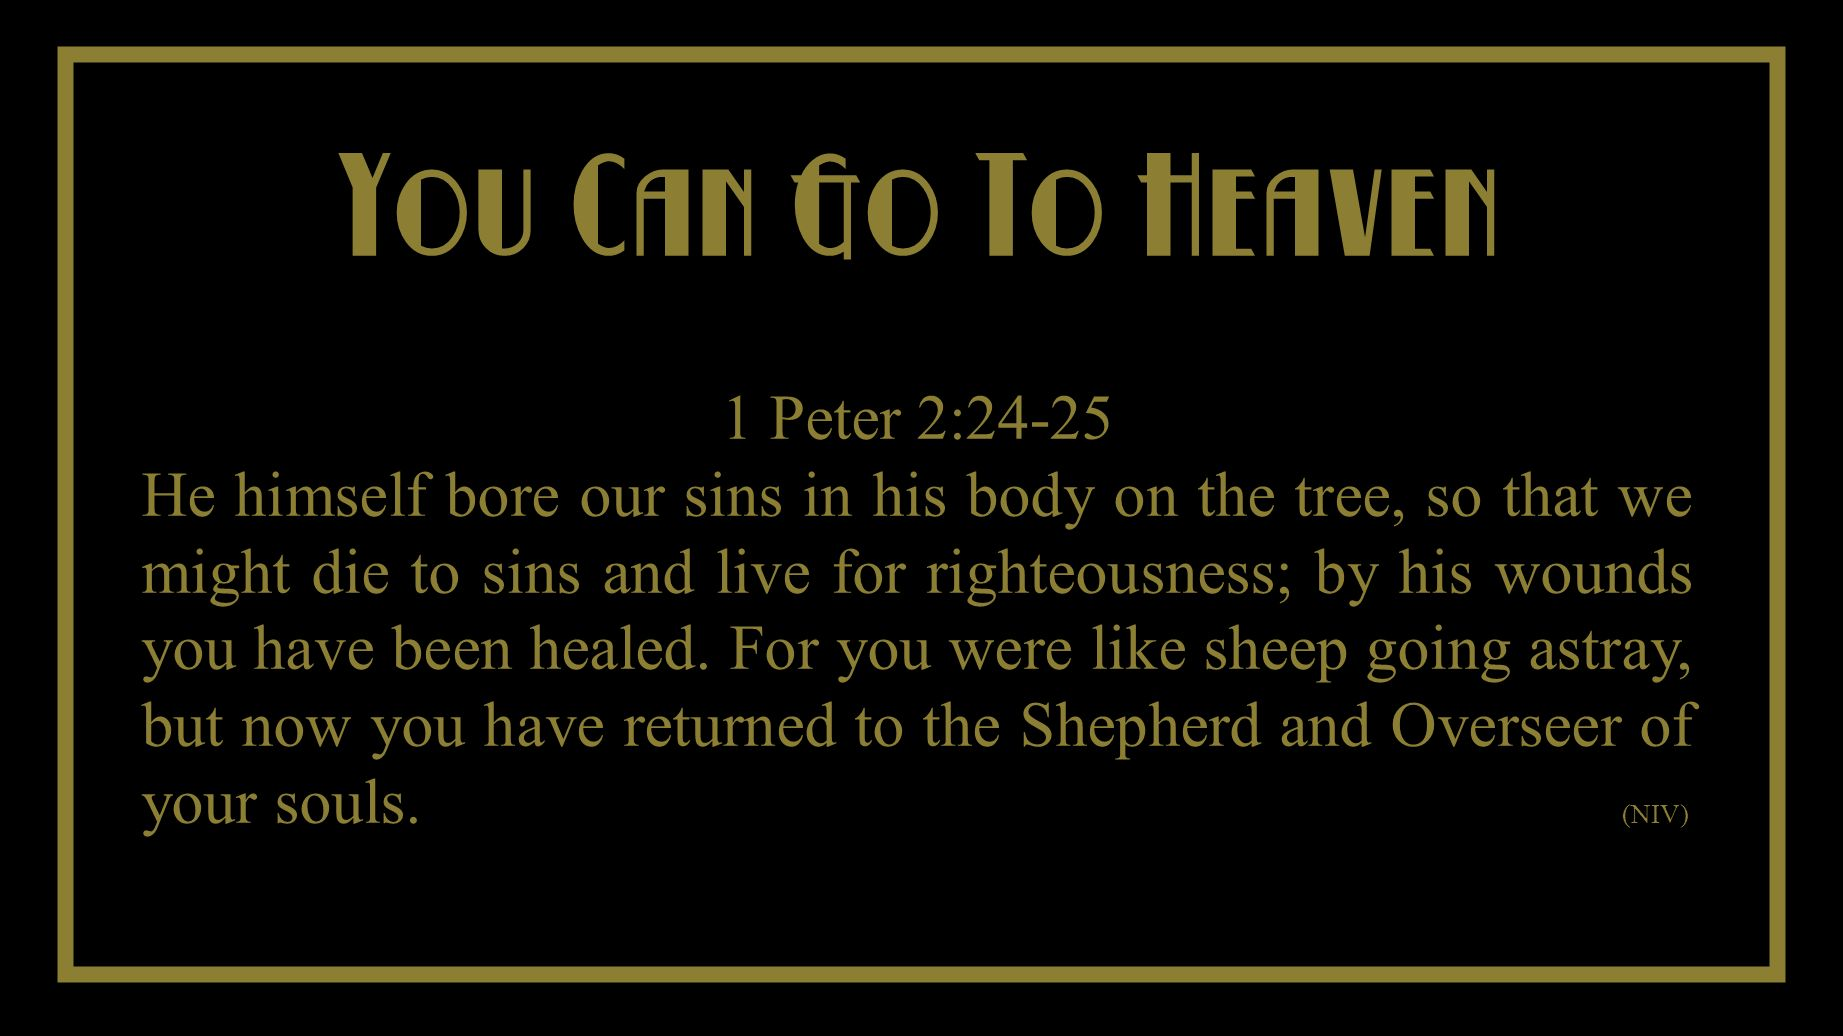 You Cant Take It With You You Can Go To Heaven 1 Peter 2:24-25 He himself bore our sins in his body on the tree, so that we might die to sins and live for righteousness; by his wounds you have been healed.